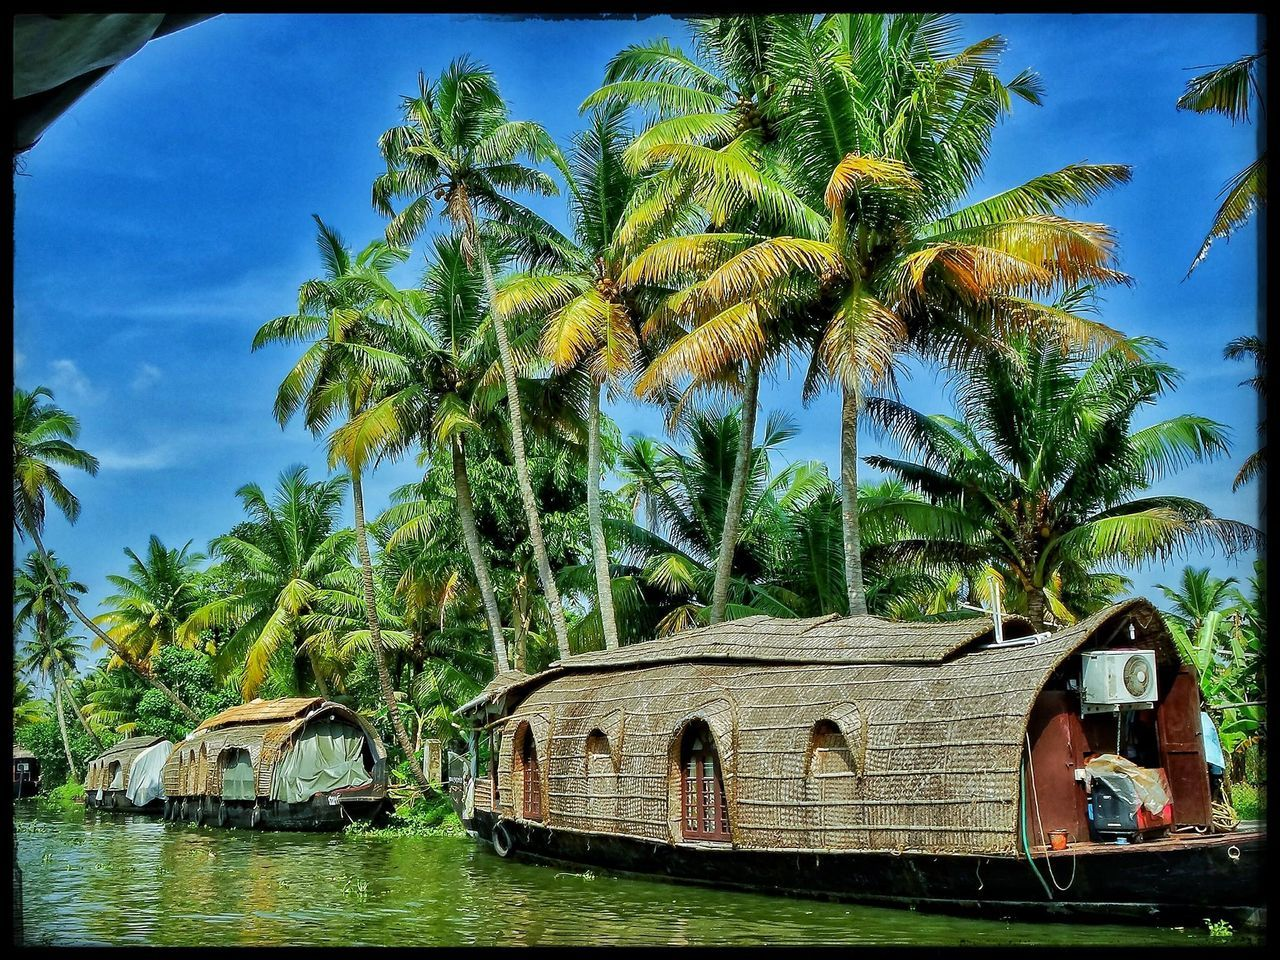 Kerala Kerala_tourism Houseboat Tourism EyeEm Gallery EyeEm Best Shots Nature Backwaters Boating Southindia Coconut Trees Outdoors River